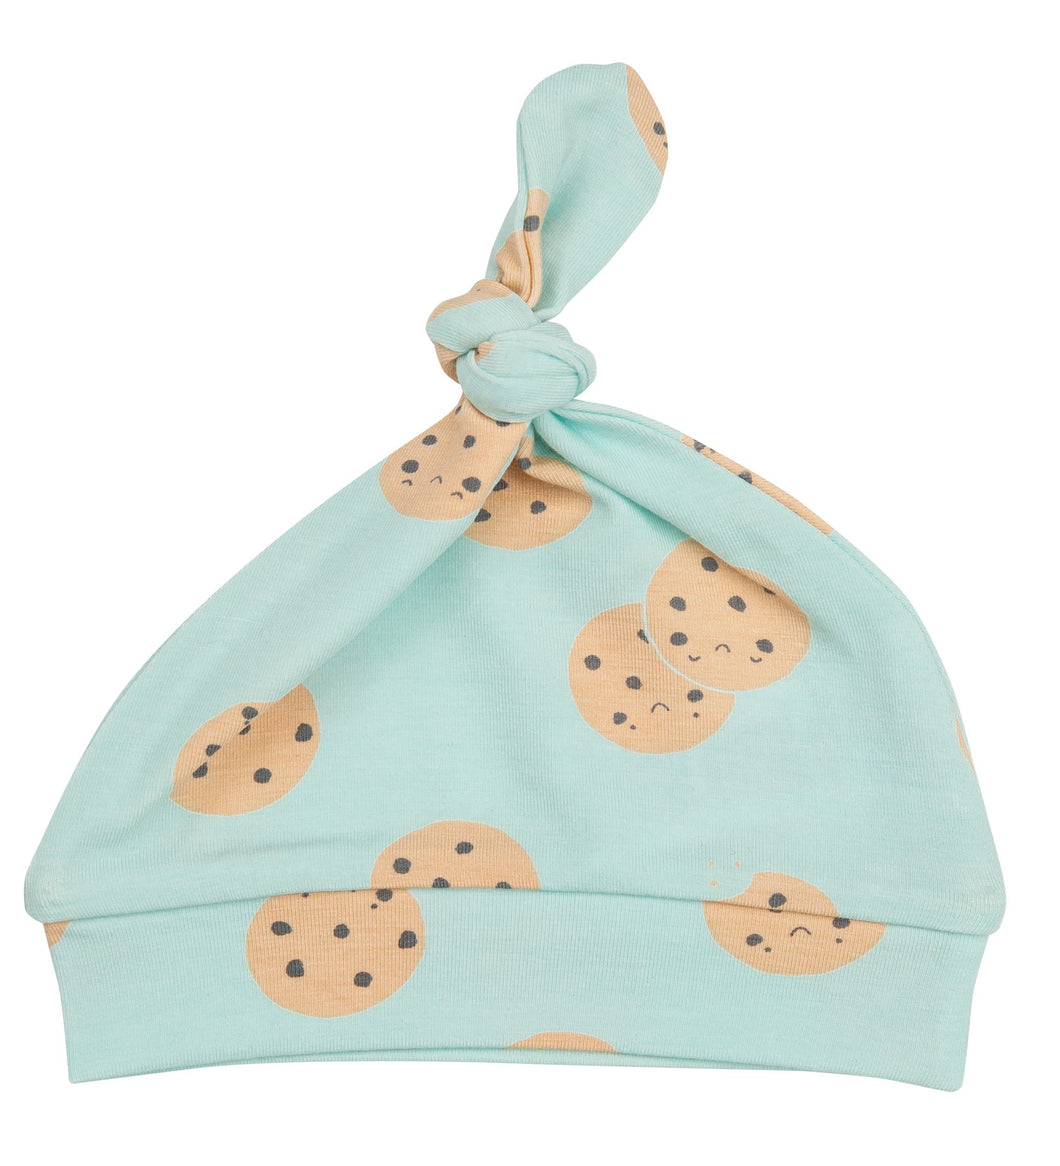 ANGEL DEAR COOKIES KNOTTED HAT 0-3 MO